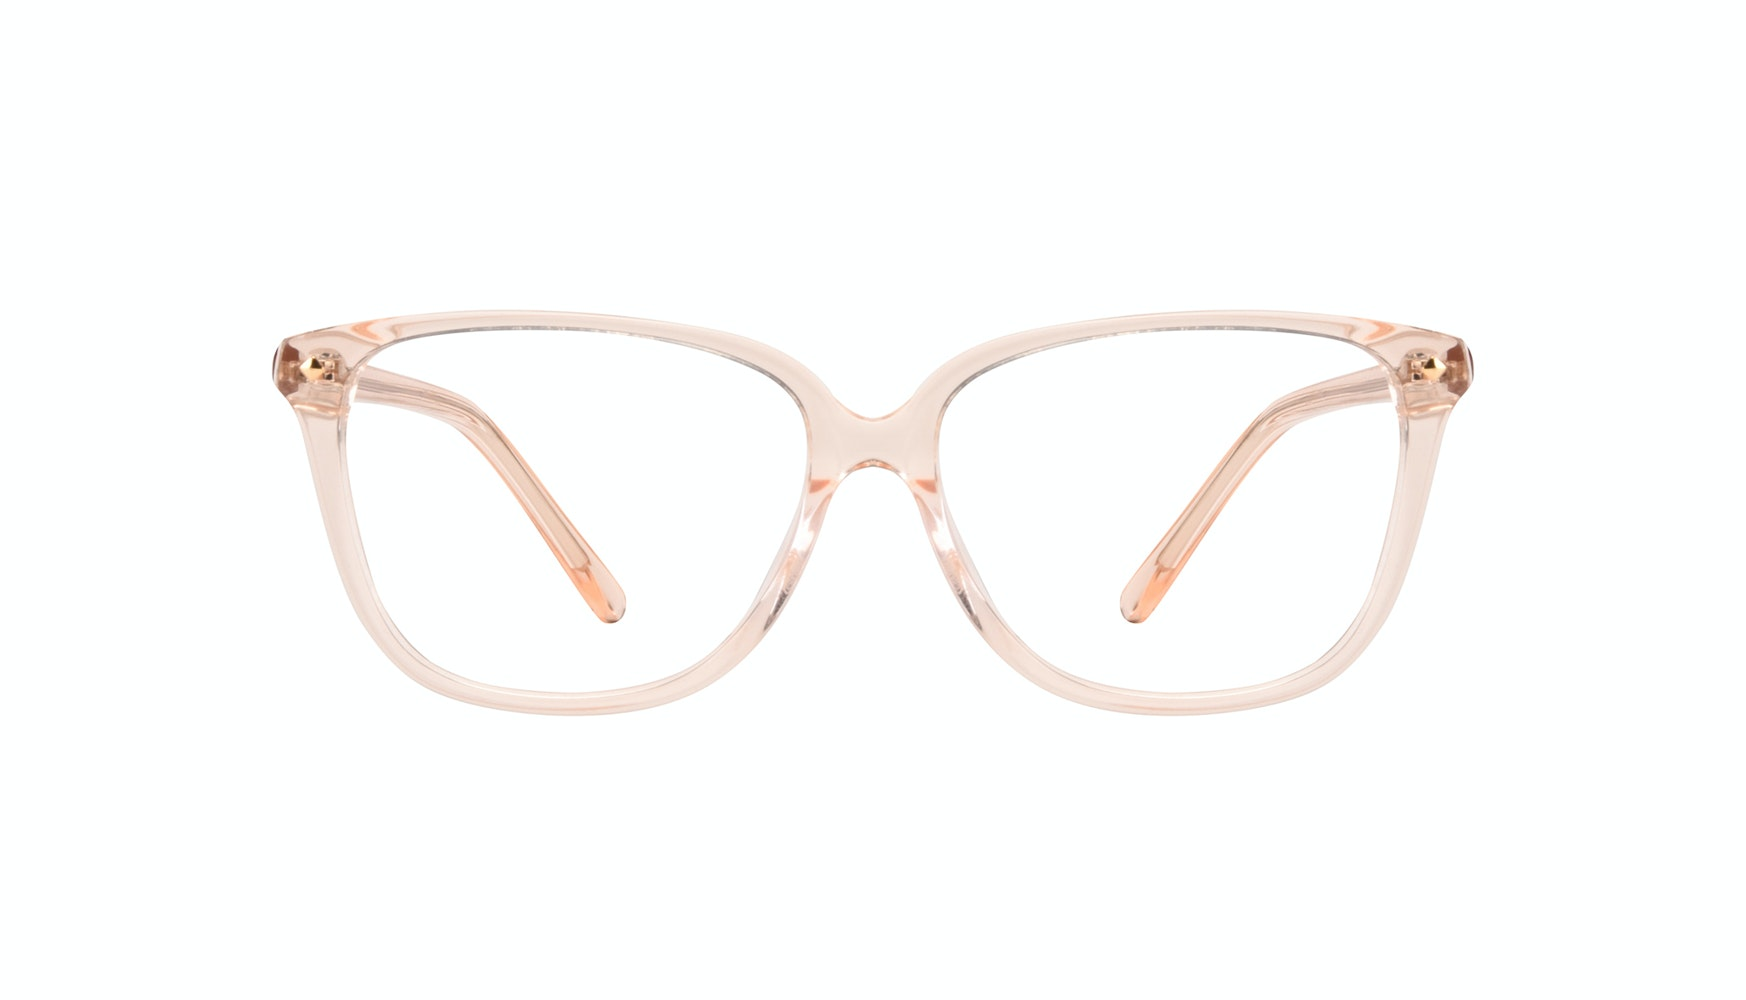 Affordable Fashion Glasses Rectangle Square Eyeglasses Women Muse Blond